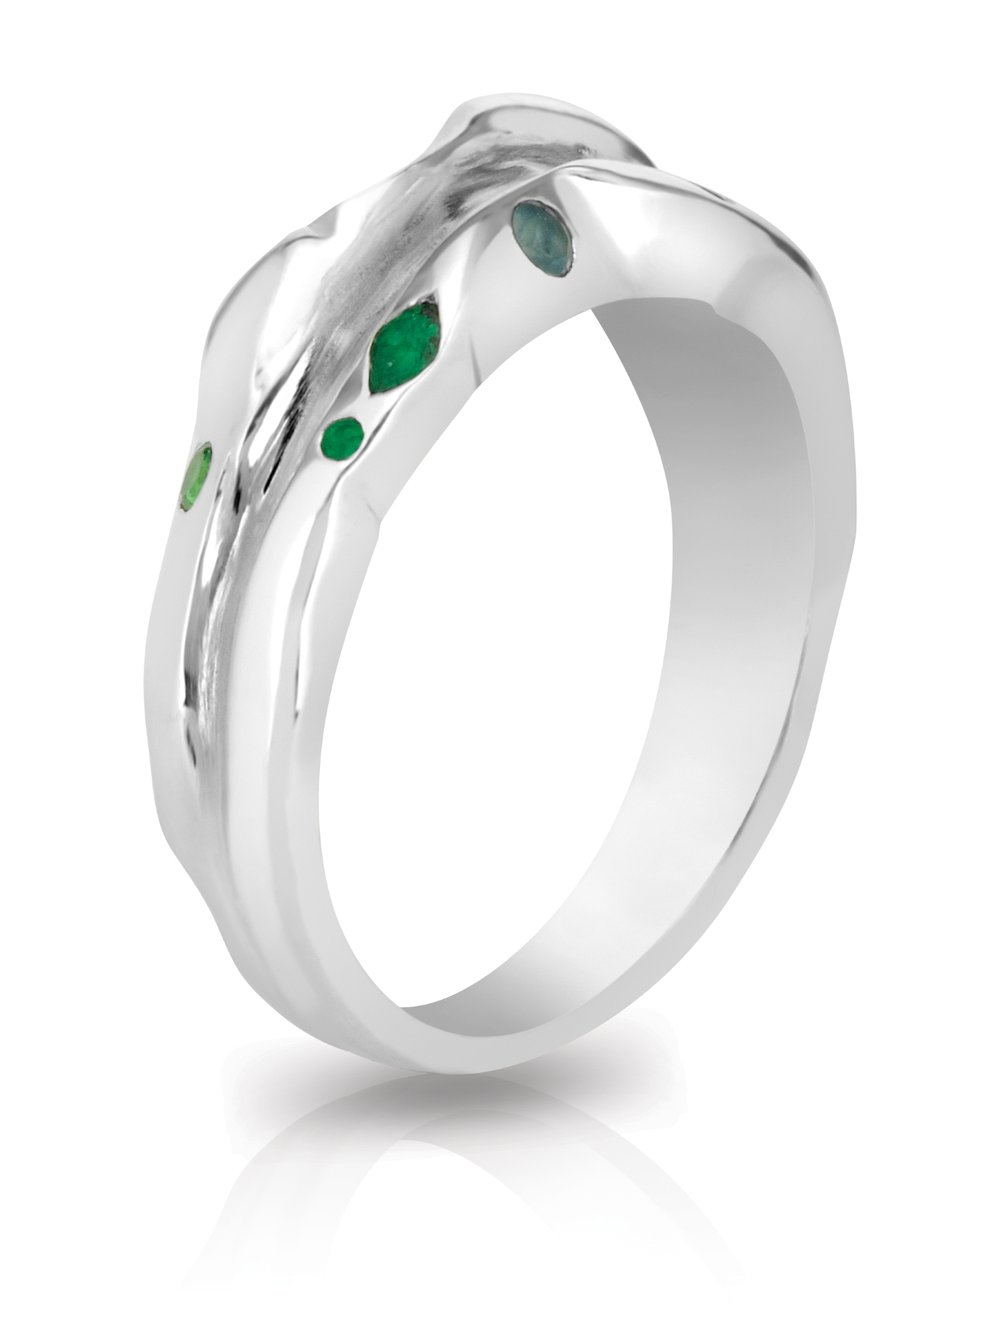 TRAIL RING | silver ring with polished edges and matte recess with flush set emeralds, tourmalines, tsavorites, and alexandrites.